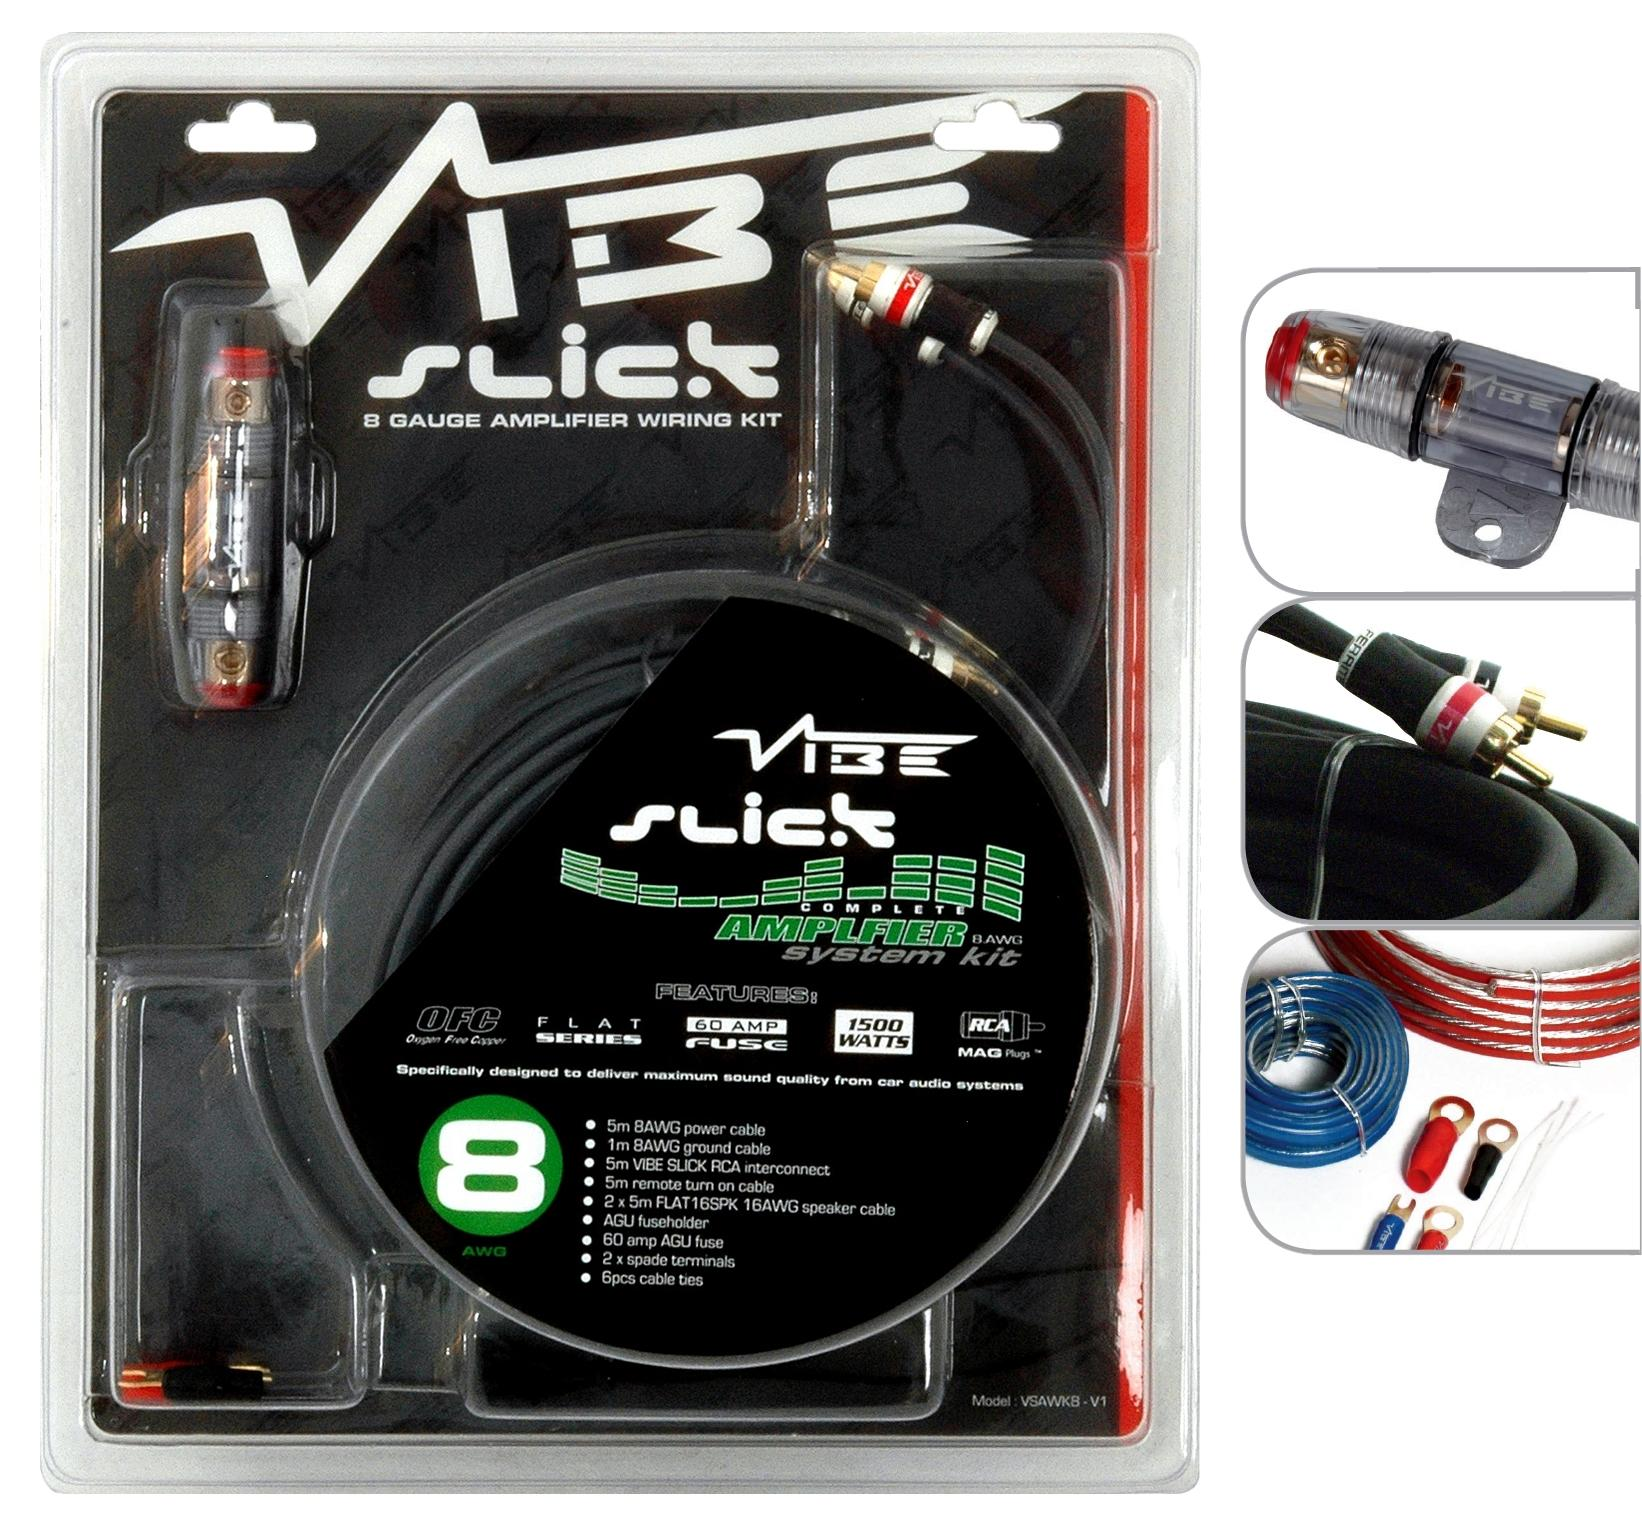 Vibe Slick 8 Gauge 1500W Amp Amplifier Wiring Kit / Sub Kit